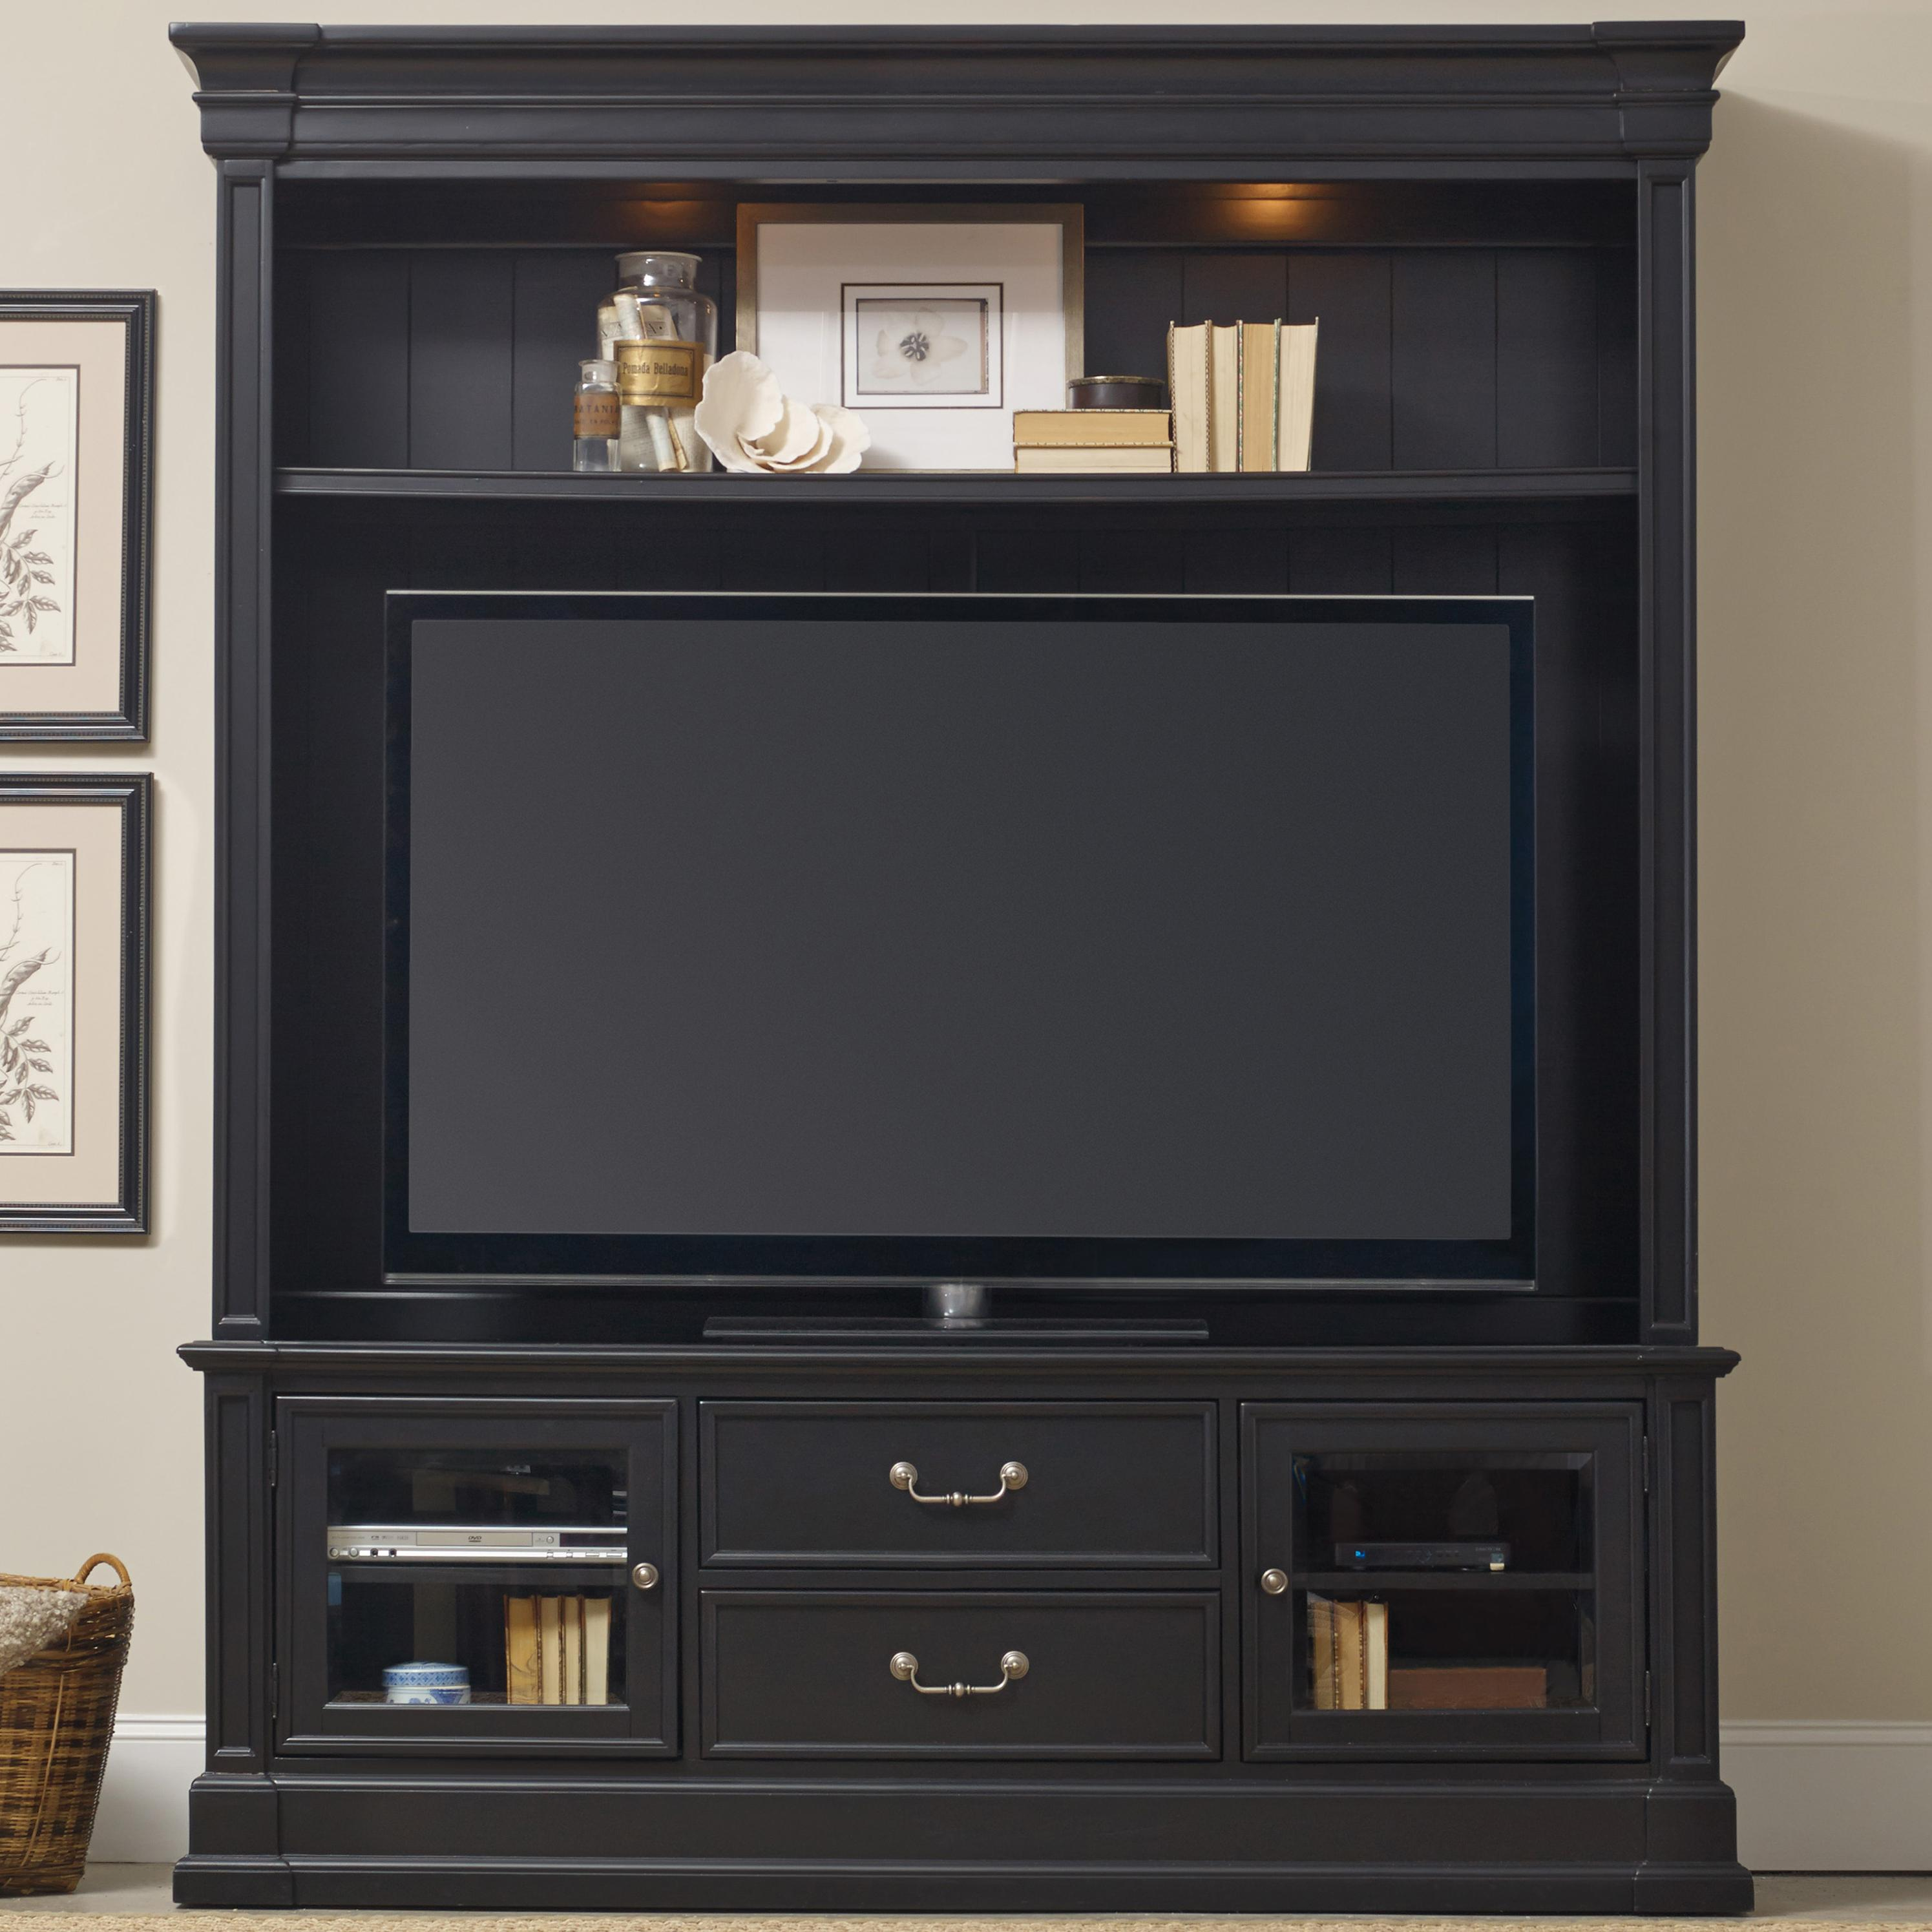 Hooker Furniture Clermont Two Piece Entertainment Group - Item Number: 5371-70202